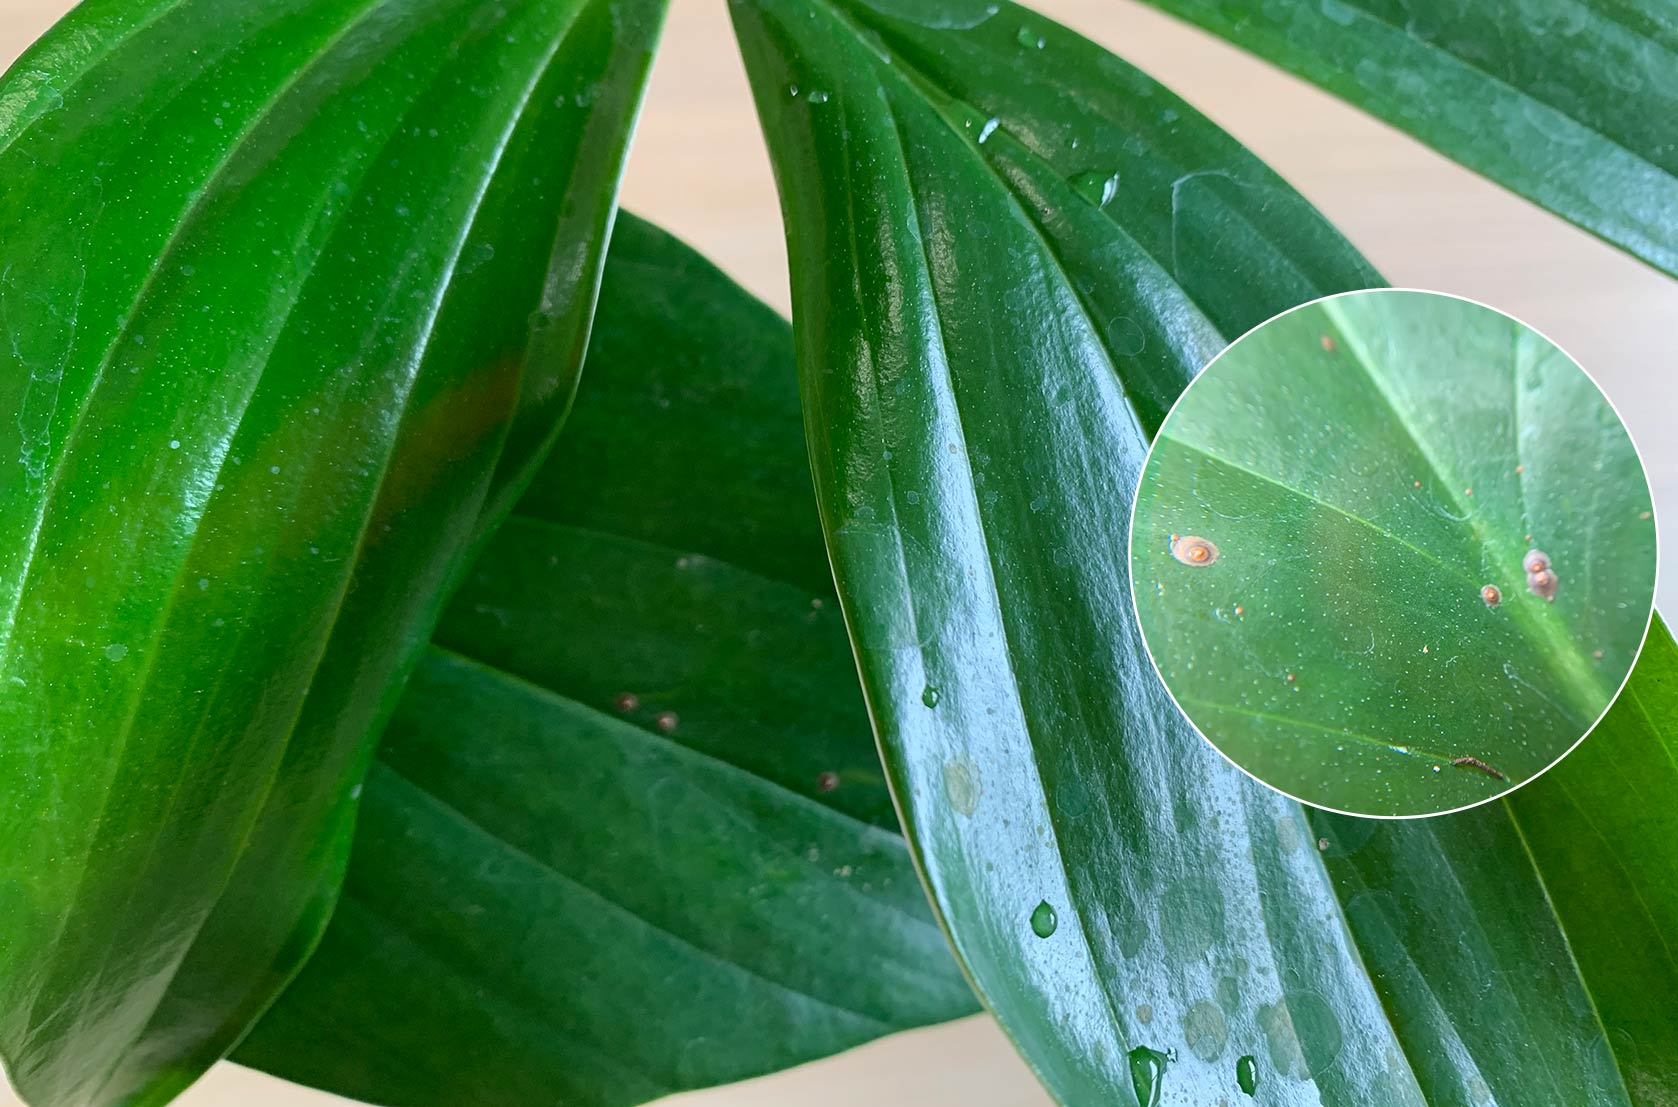 A magnified view of the common pest scale on the leaves of an indoor plant